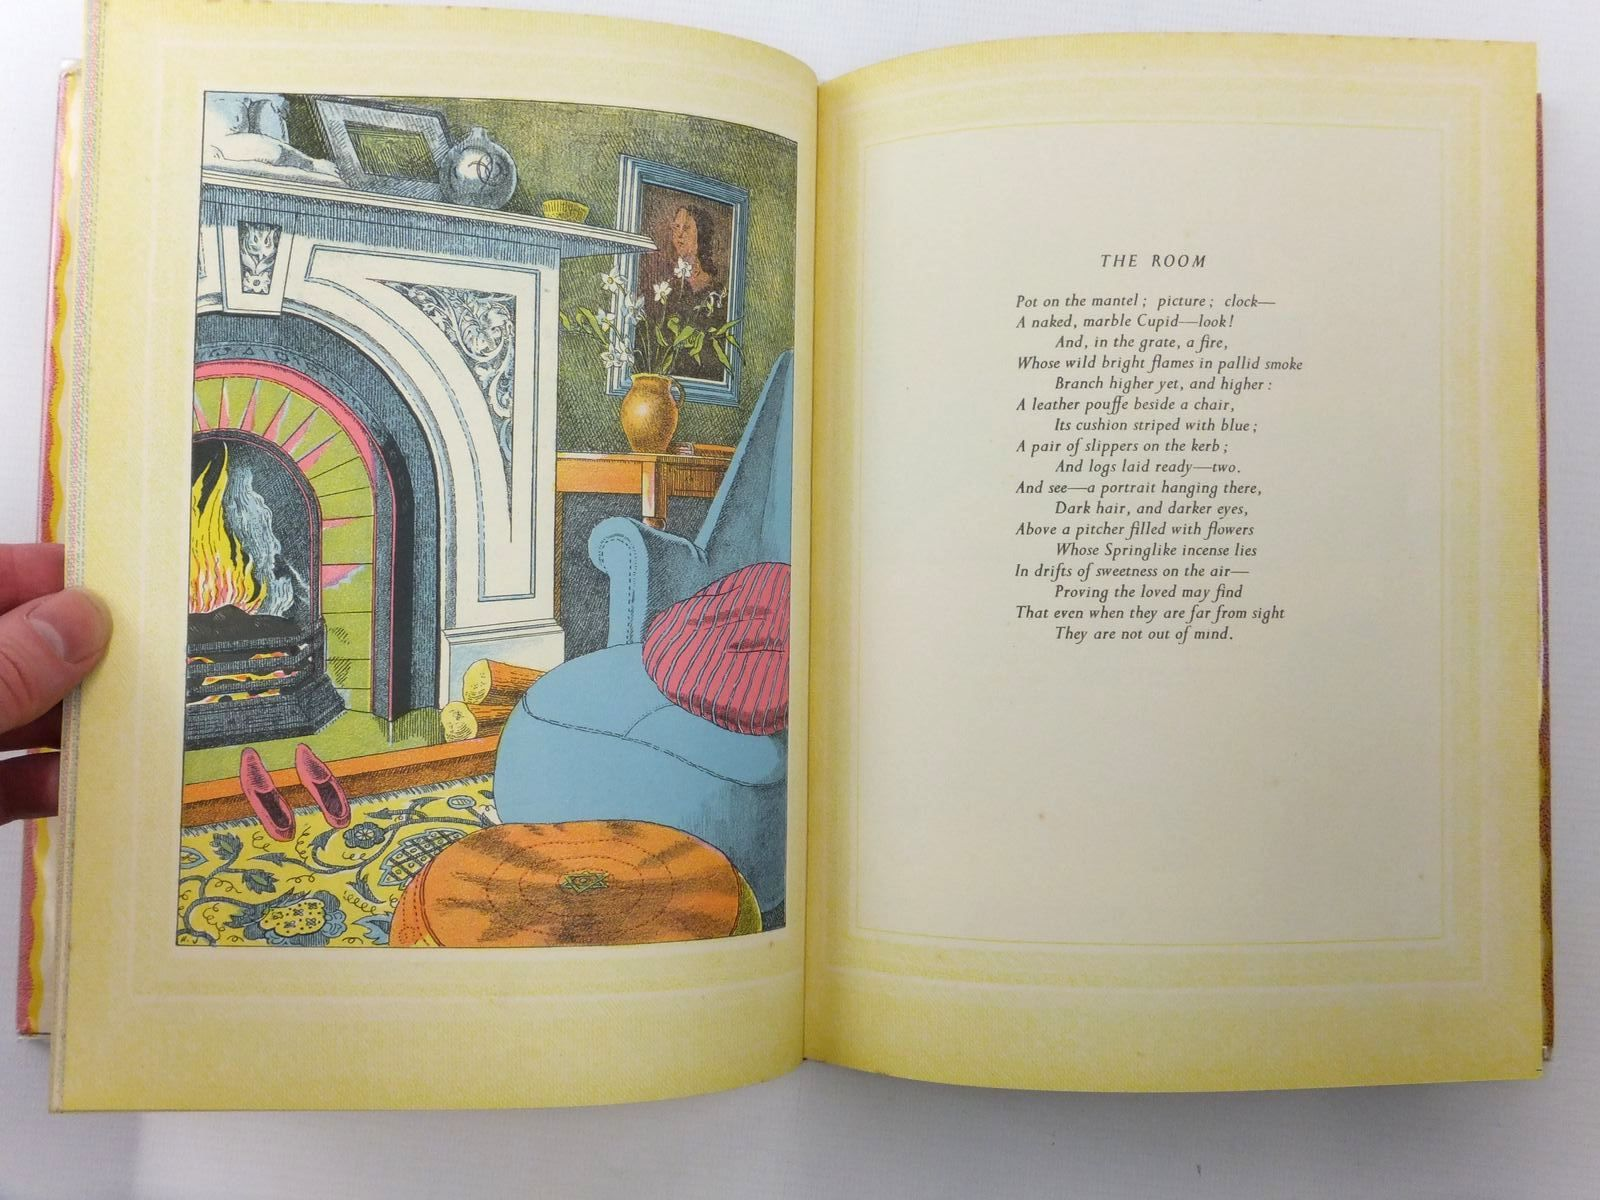 Photo of THIS YEAR: NEXT YEAR written by De La Mare, Walter illustrated by Jones, Harold published by Faber & Faber (STOCK CODE: 2123608)  for sale by Stella & Rose's Books